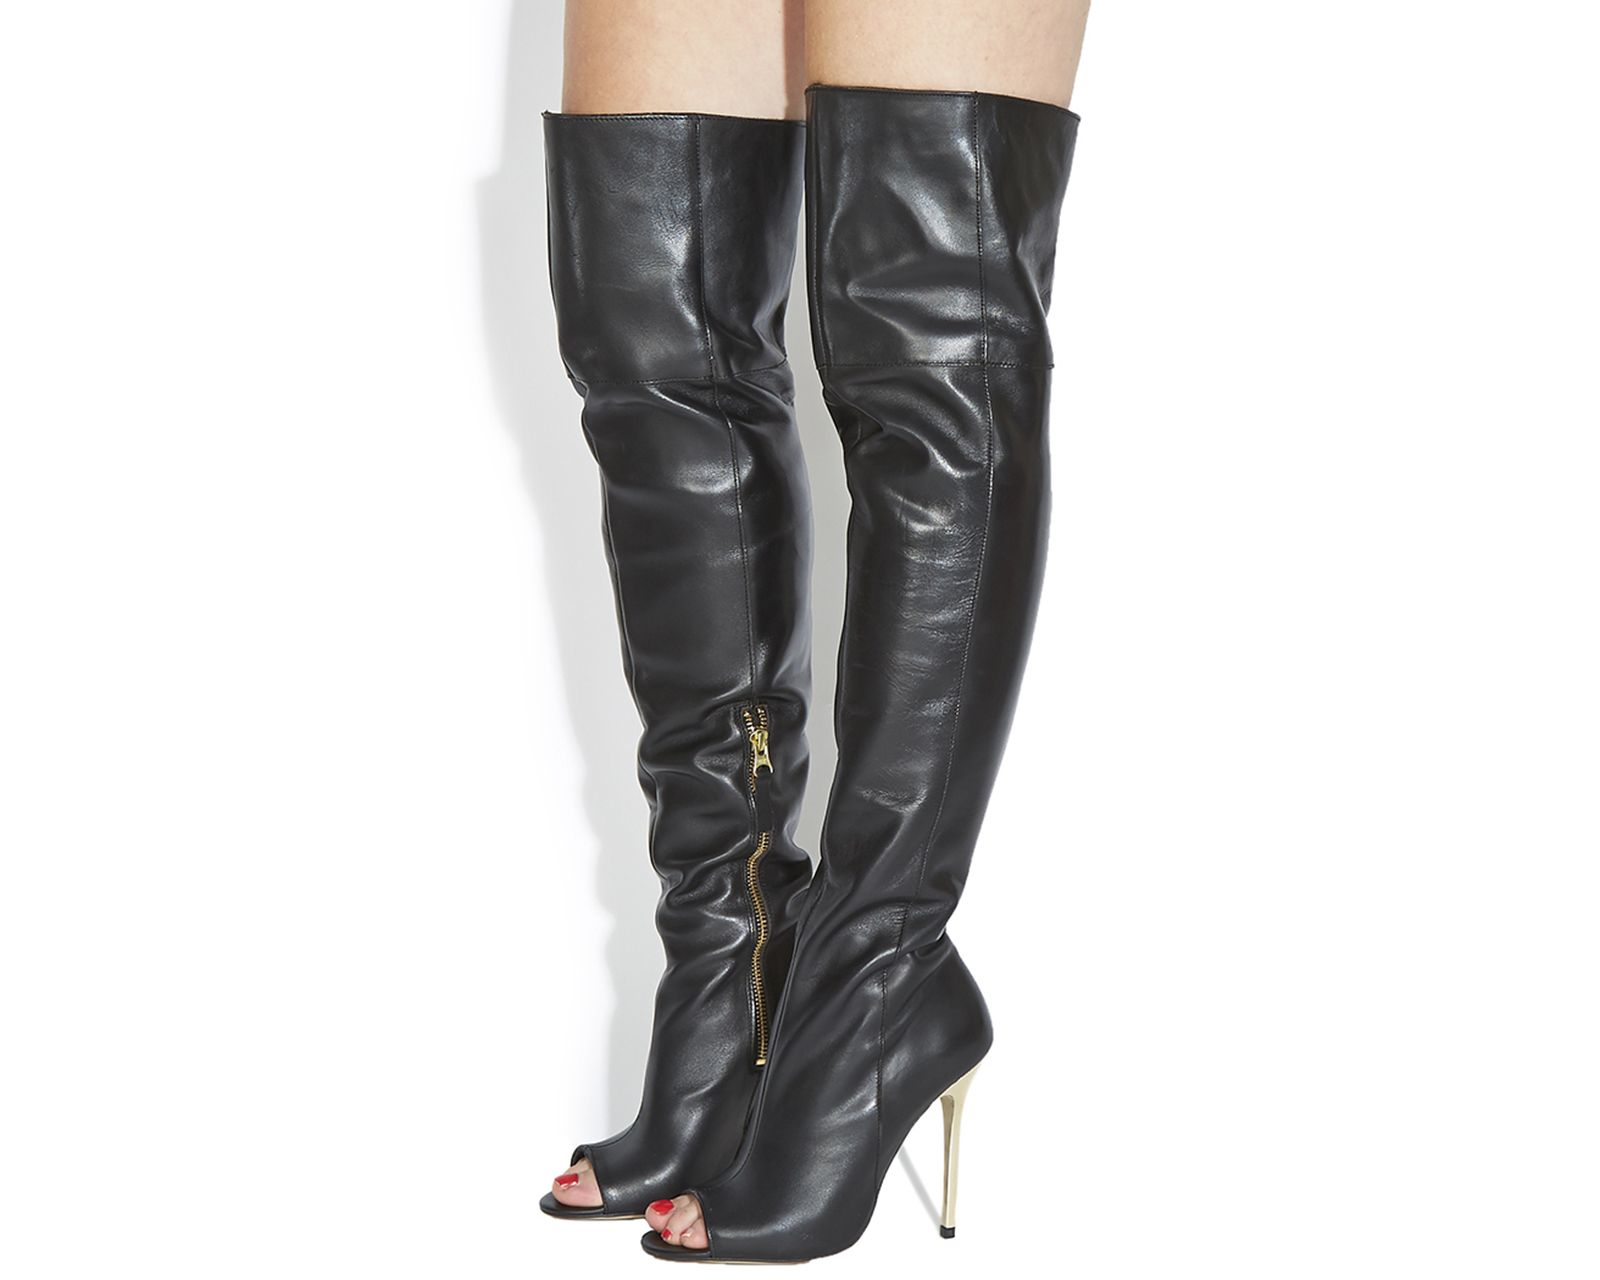 Office Everything Ptoe Over The Knee Boots Black Leather Gold Heel